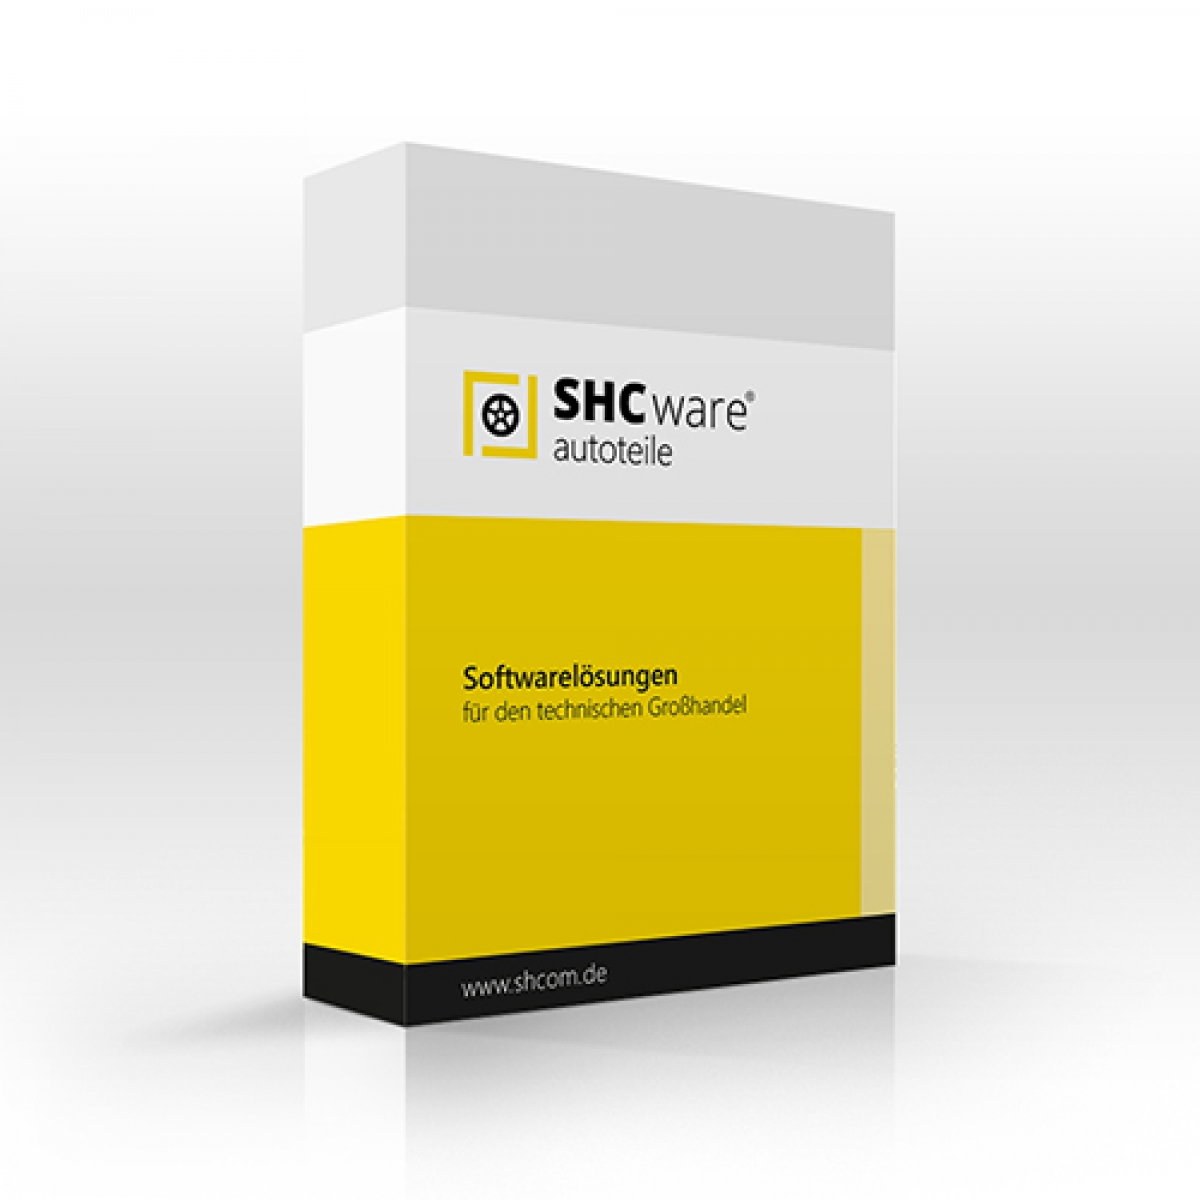 SHComputersysteme - SHCware® autoteile